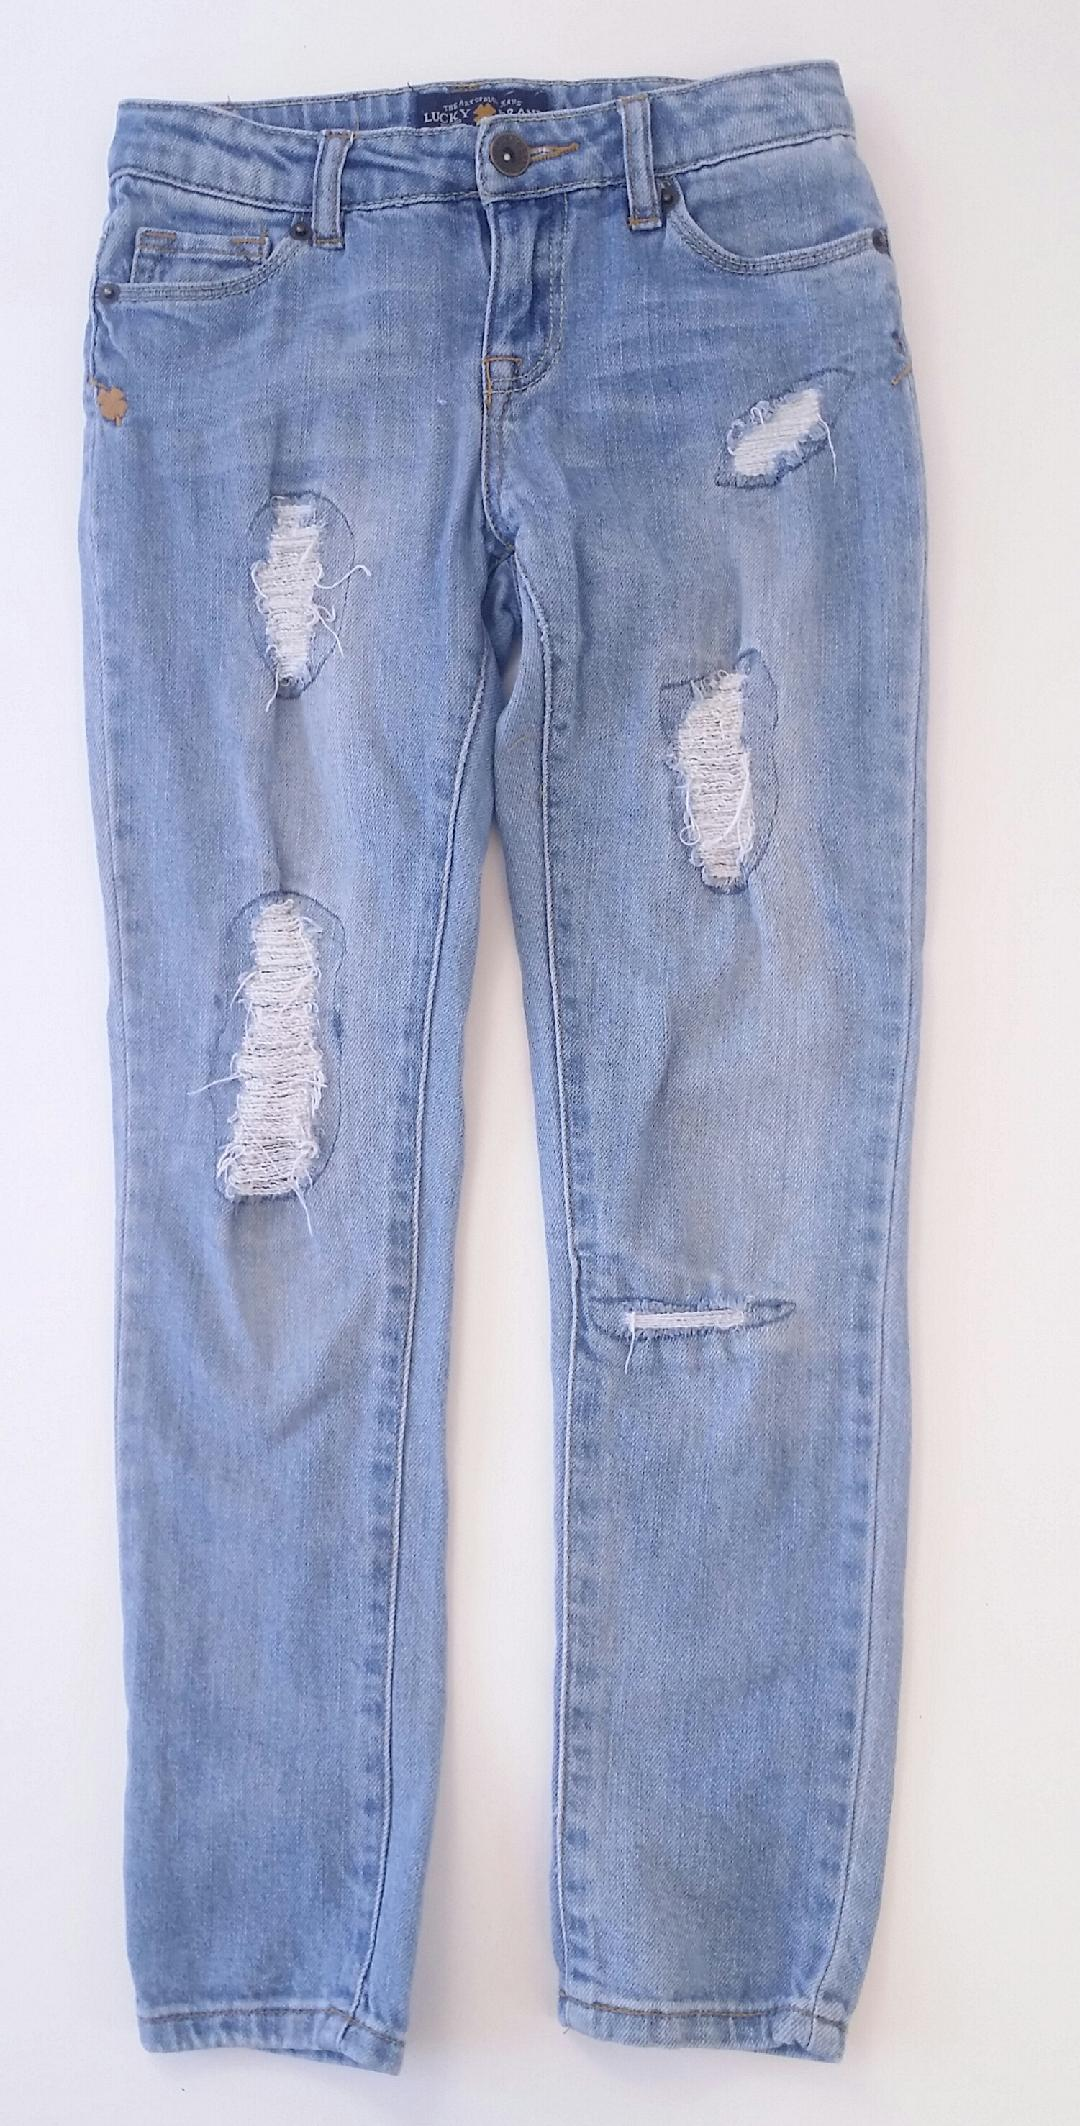 Lucky-Brand--8-YEARS-Distressed-Jeans_2160129A.jpg